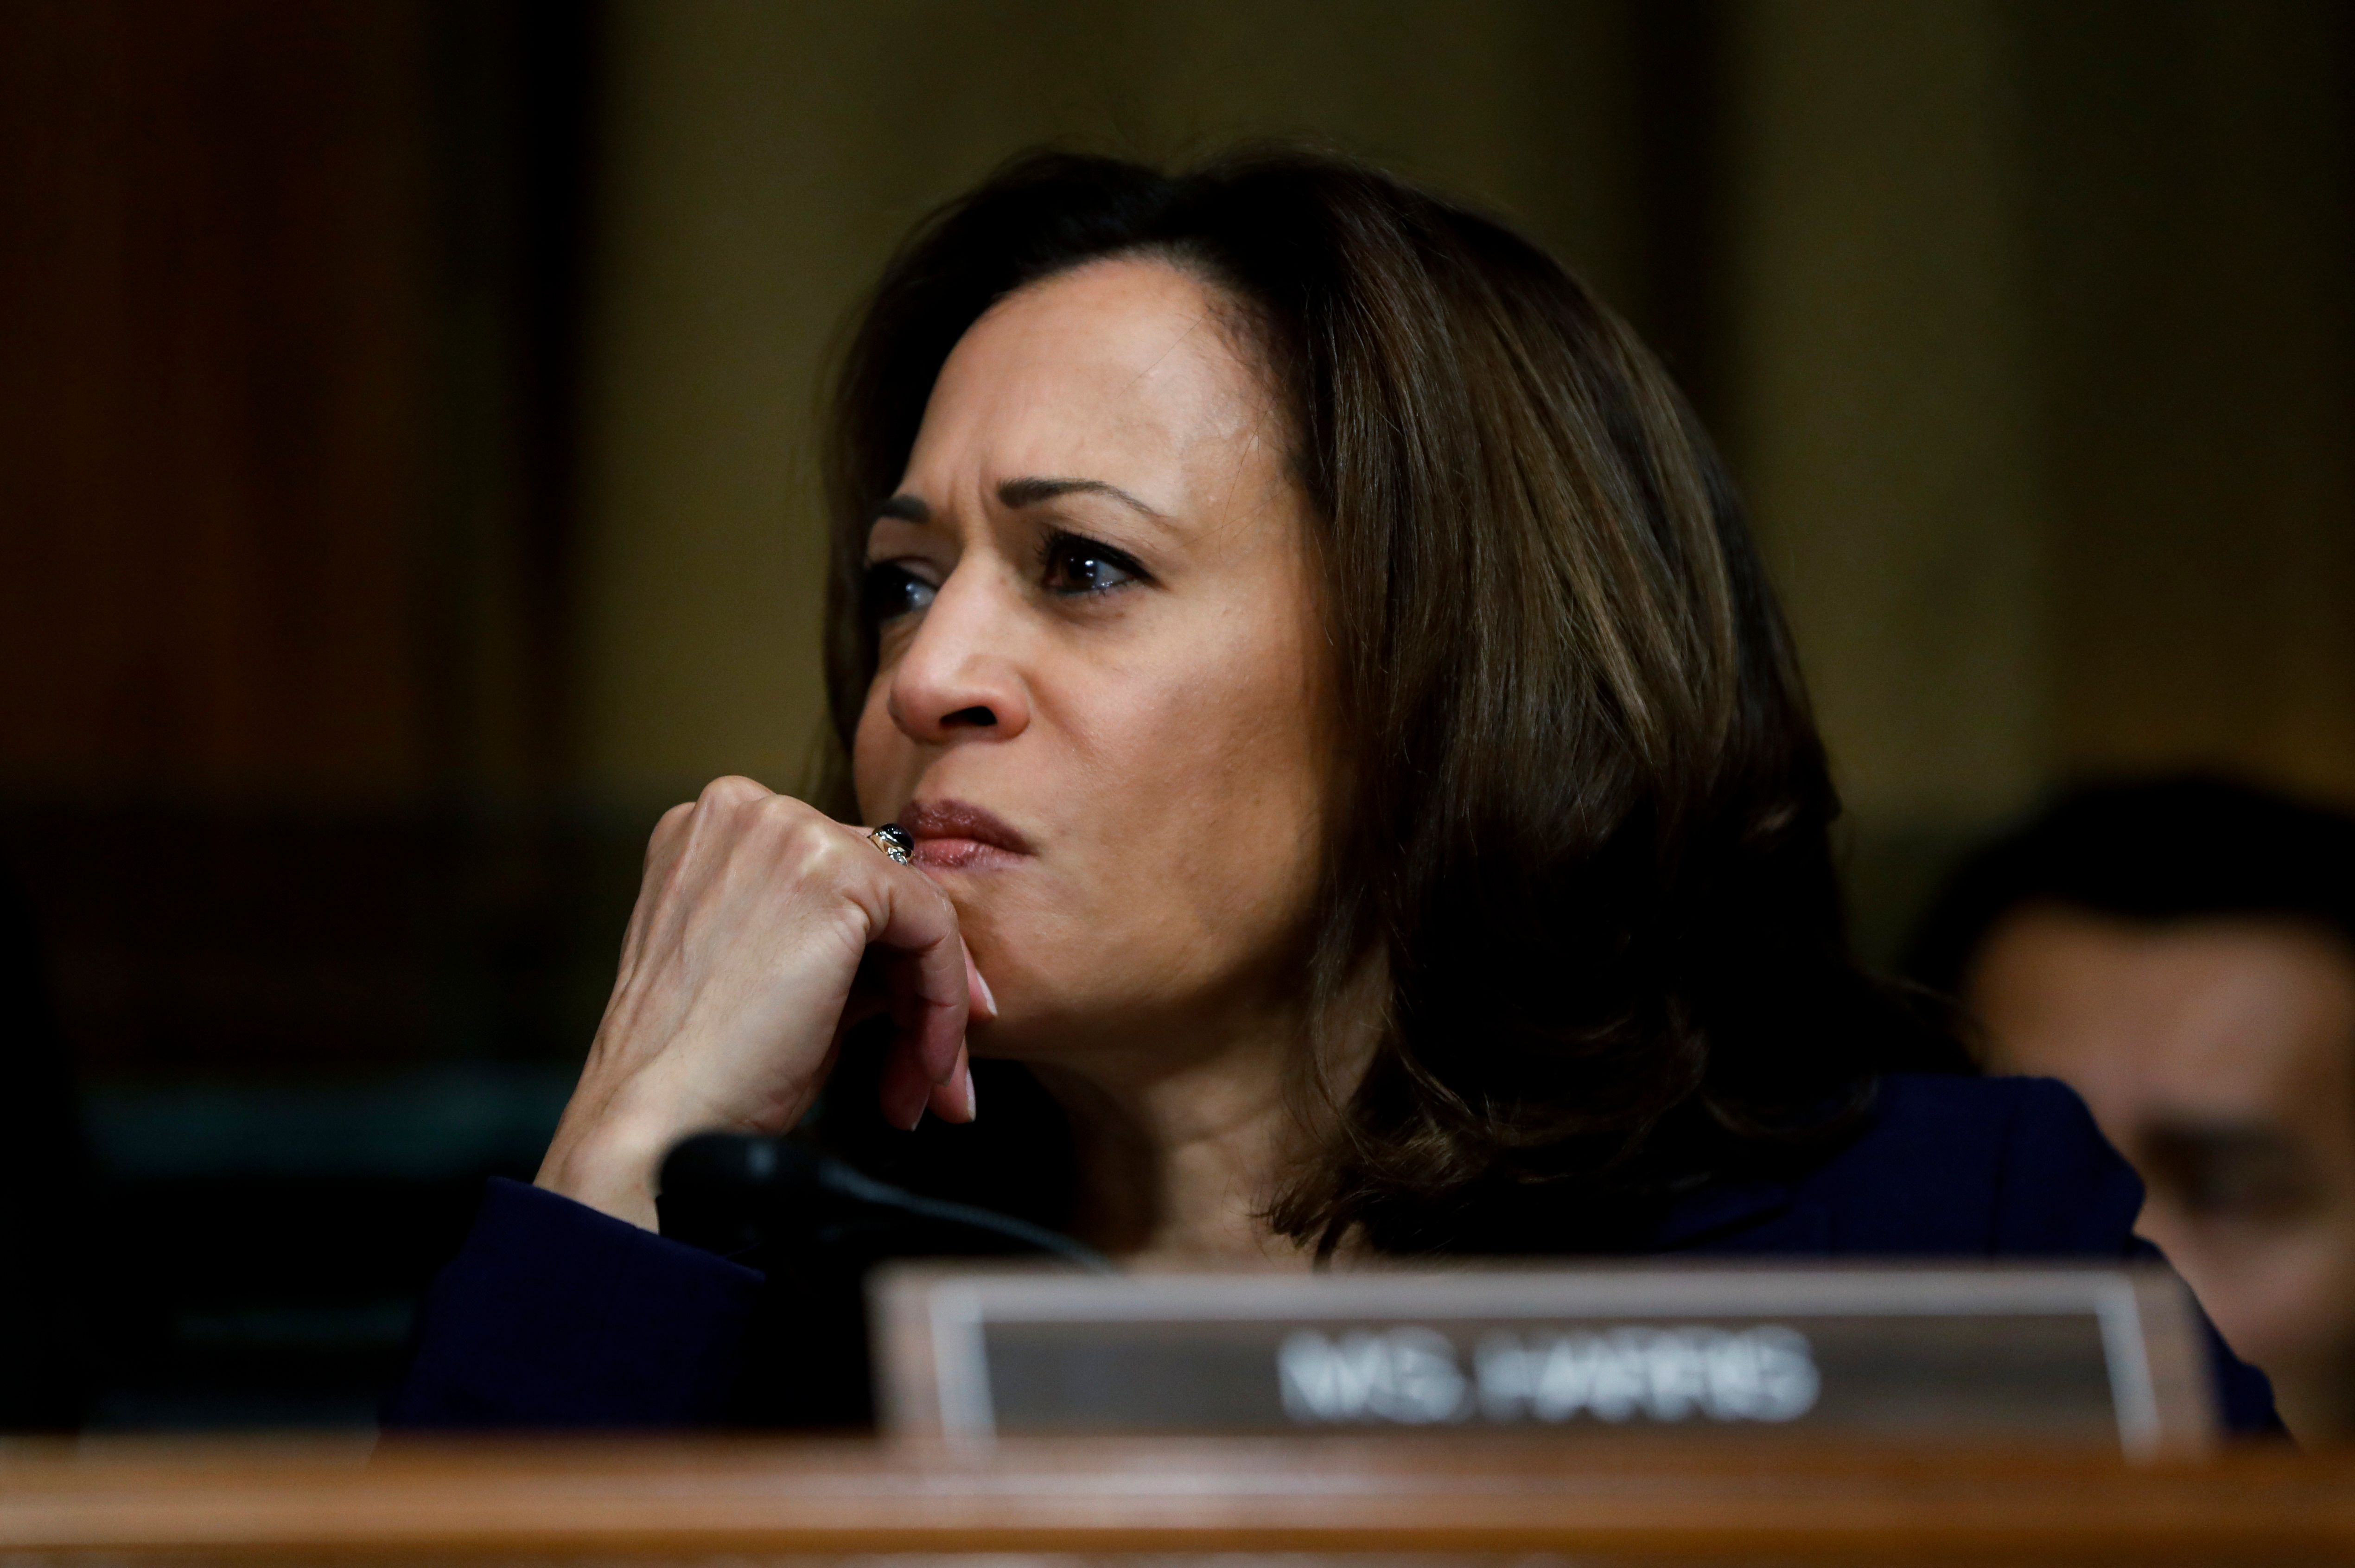 FILE - In this Sept. 28, 2018, file photo, Sen. Kamala Harris, D-Calif. attends a Senate Judiciary Committee meeting on Capitol Hill in Washington. Their campaigns are not yet official, but some Democrats are beginning to frame the 2020 fight on their terms. (AP Photo/Pablo Martinez Monsivais, File)